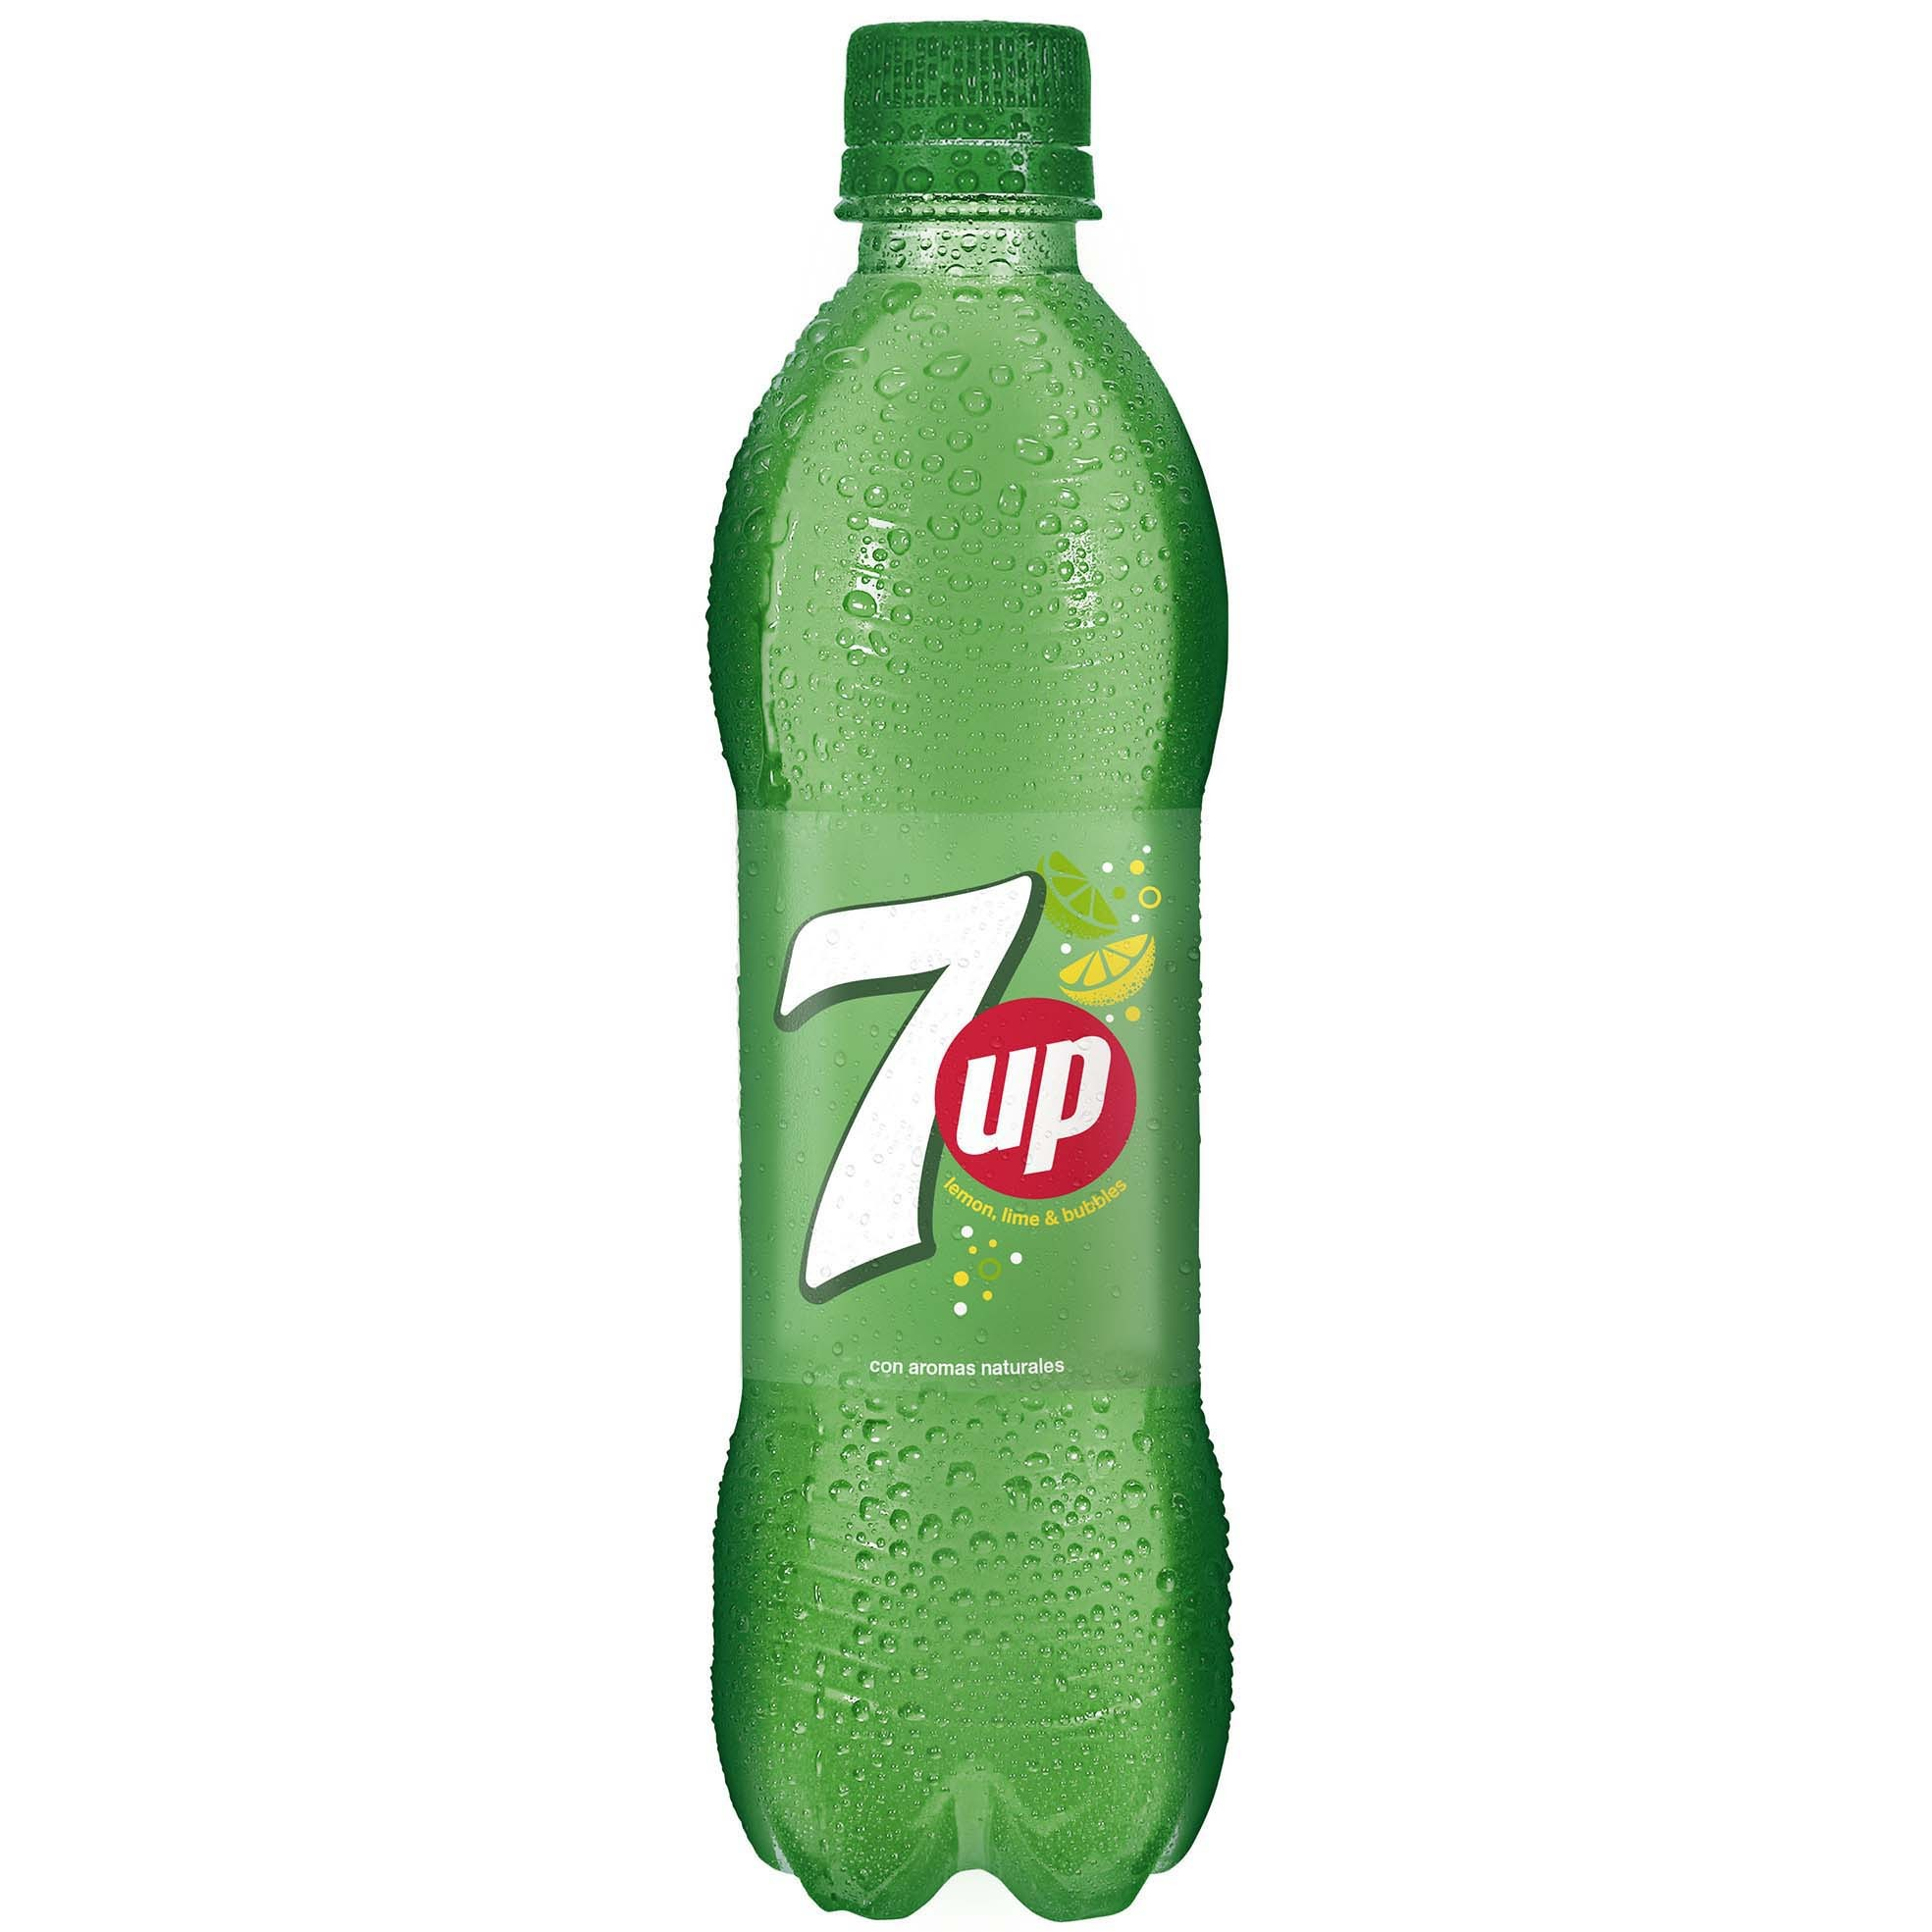 7up refresco lima limon con gas lima de 50cl. en botella